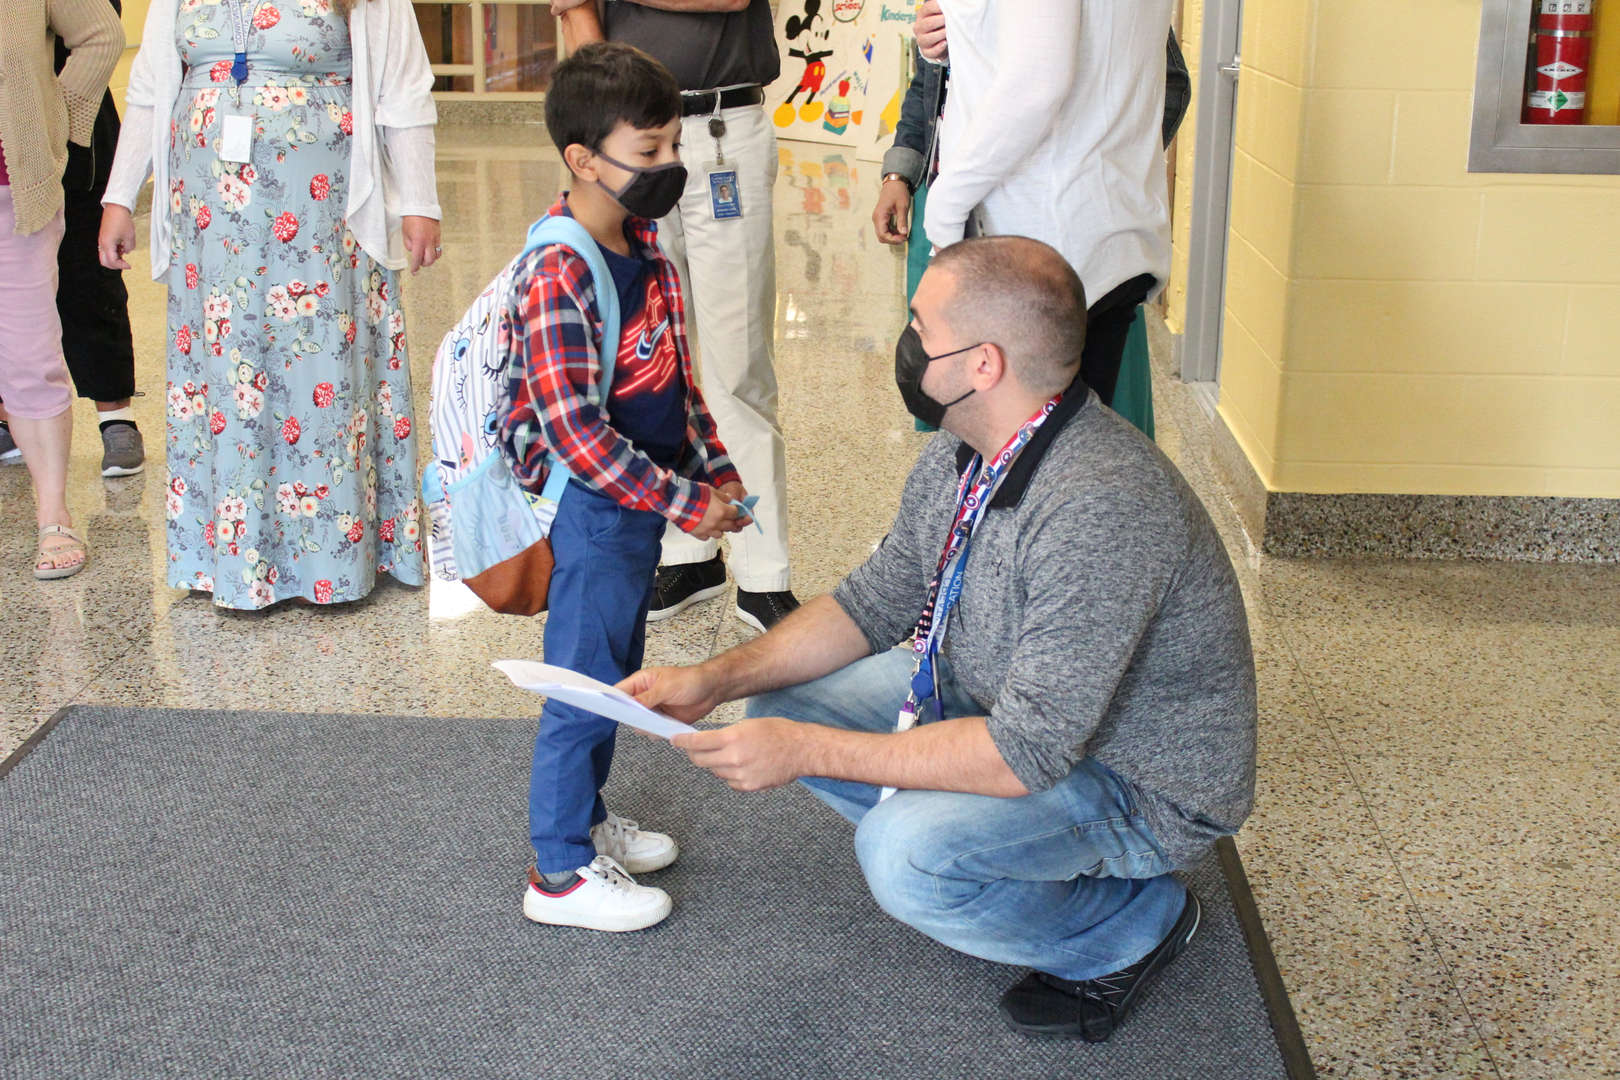 Staff member assists a student on the first day of school